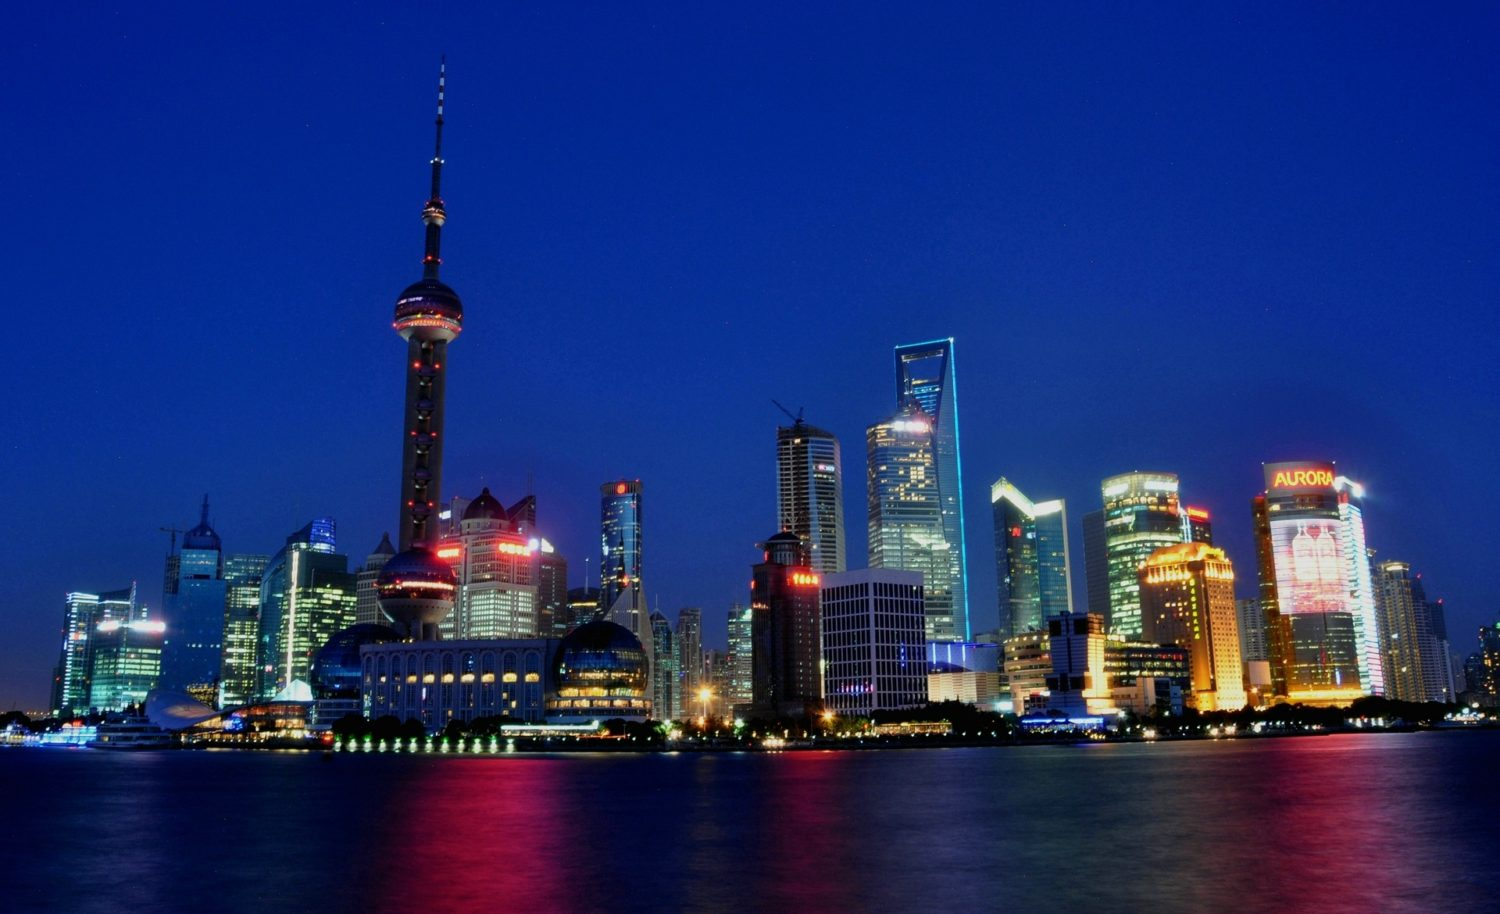 The Bund, Shanghai at night